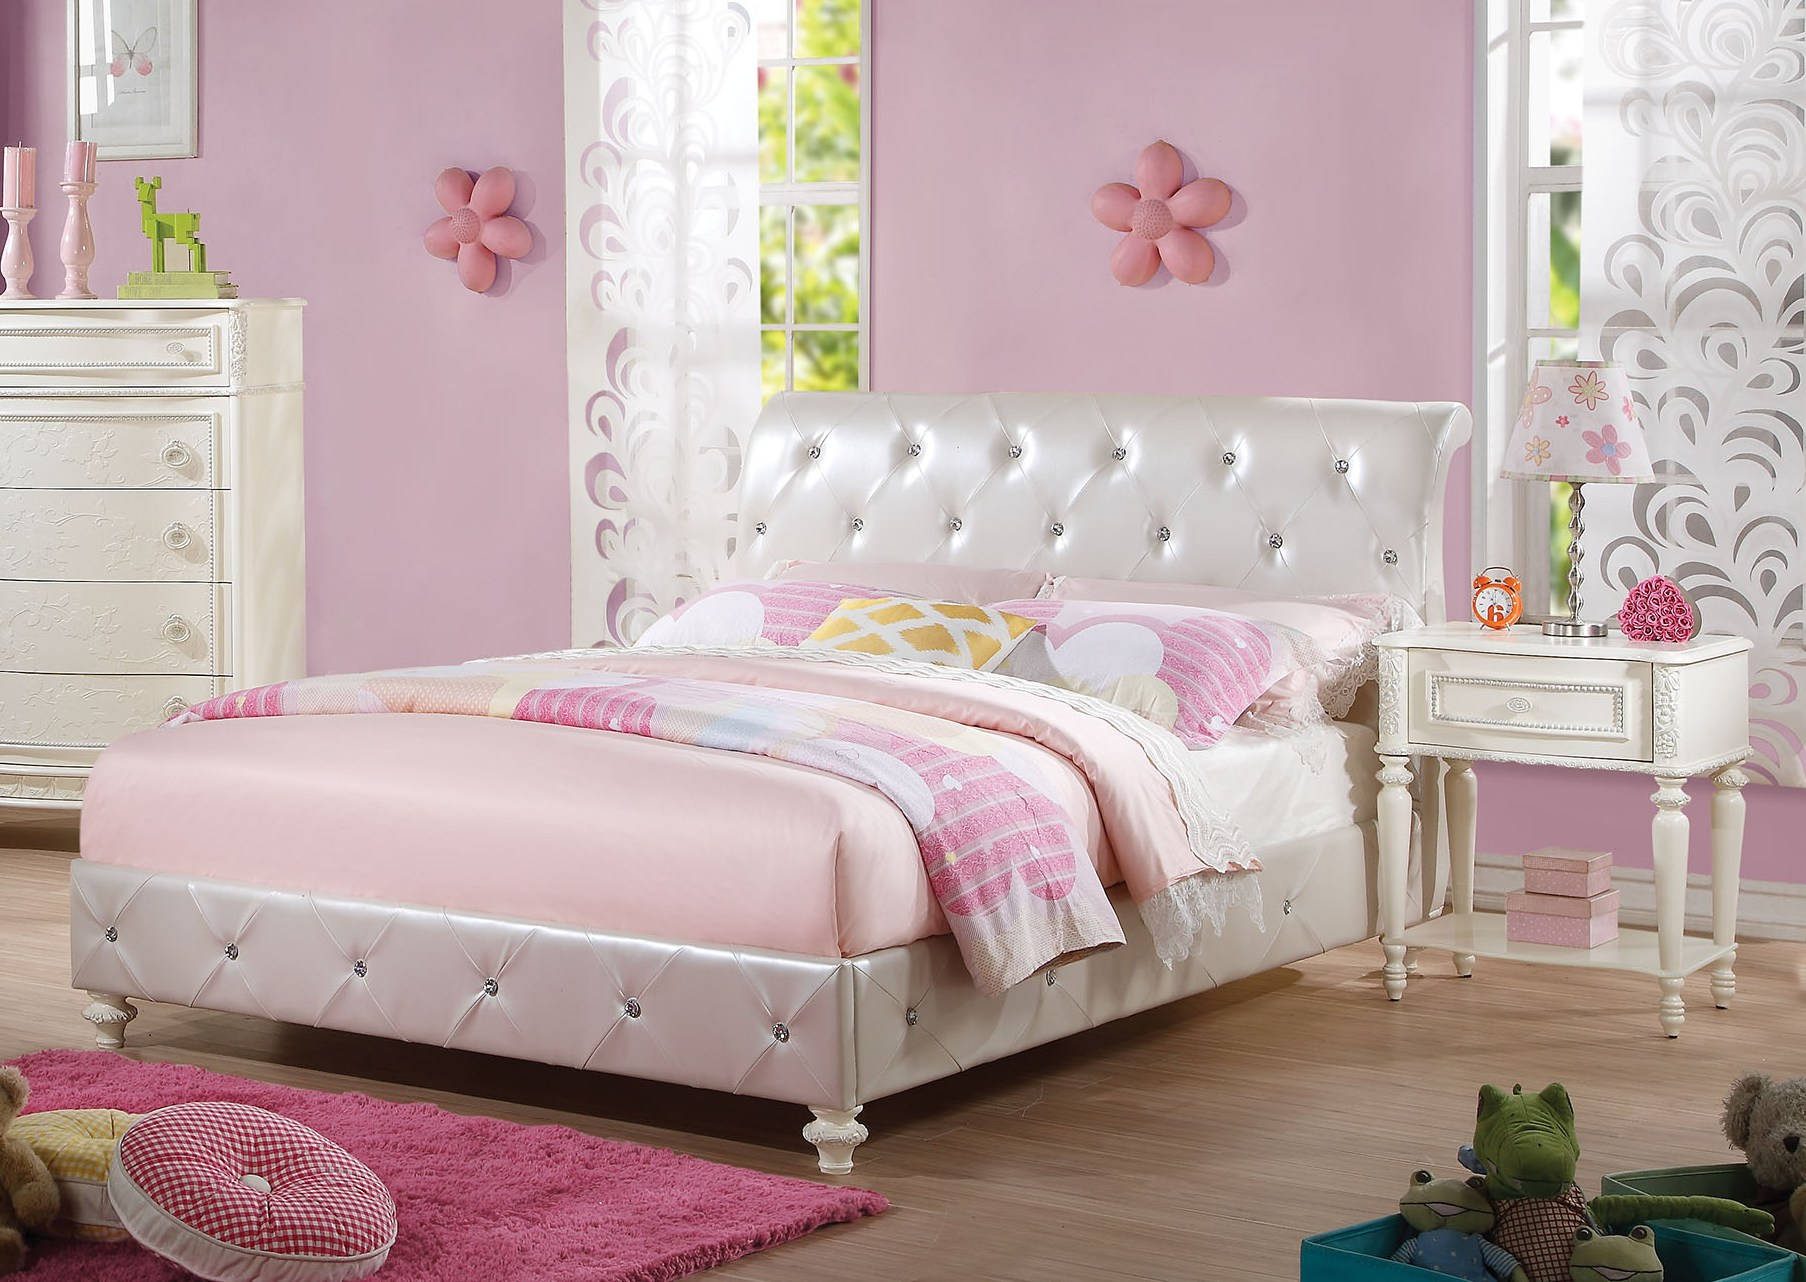 HomeRoots Pearl White PU 2pc Bedroom Sets with Full Padded Bed